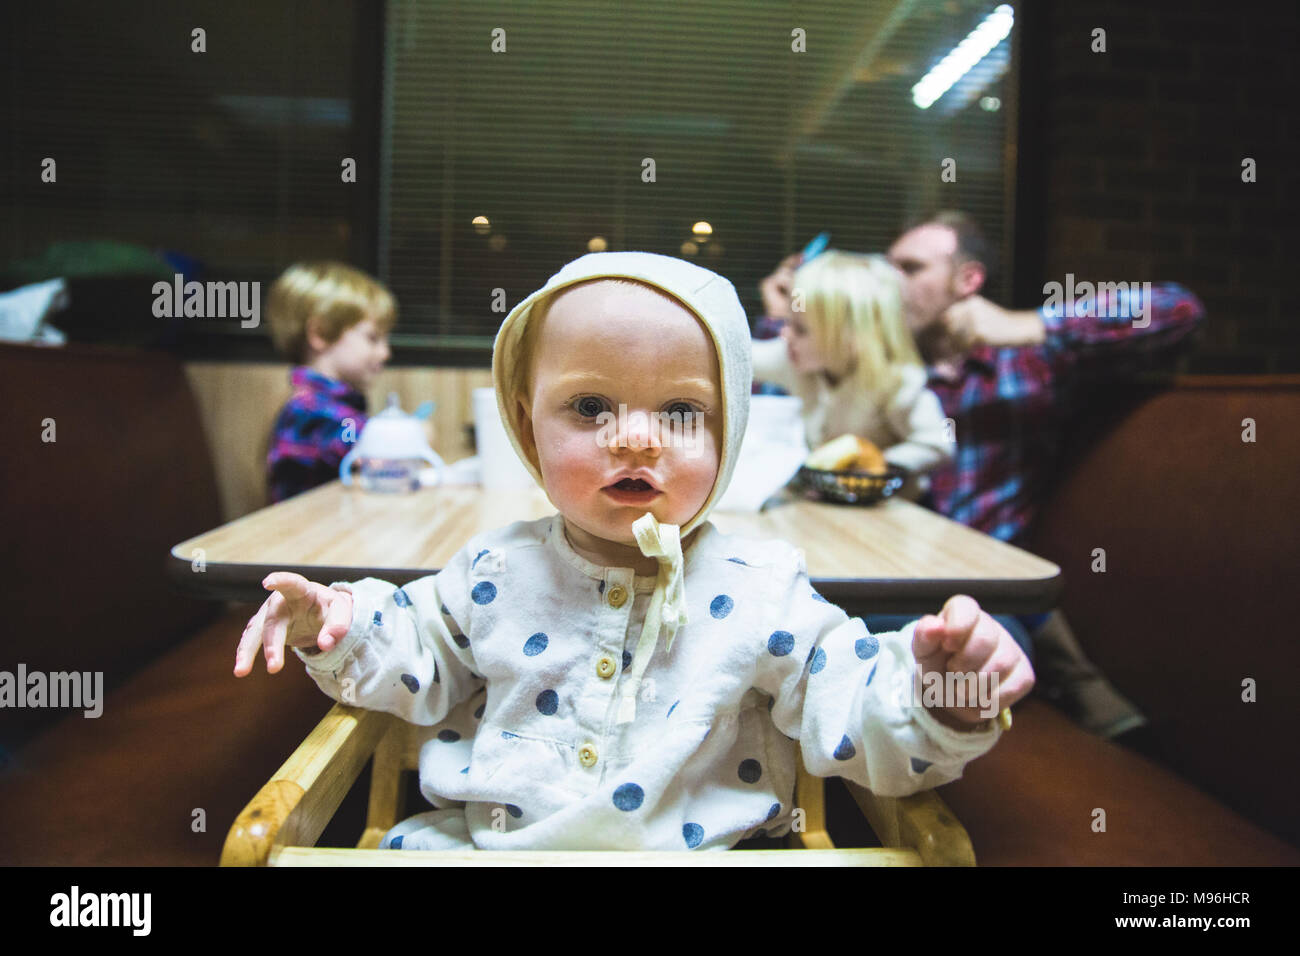 Baby looking at camera avec la famille assis dans diner booth derrière Photo Stock